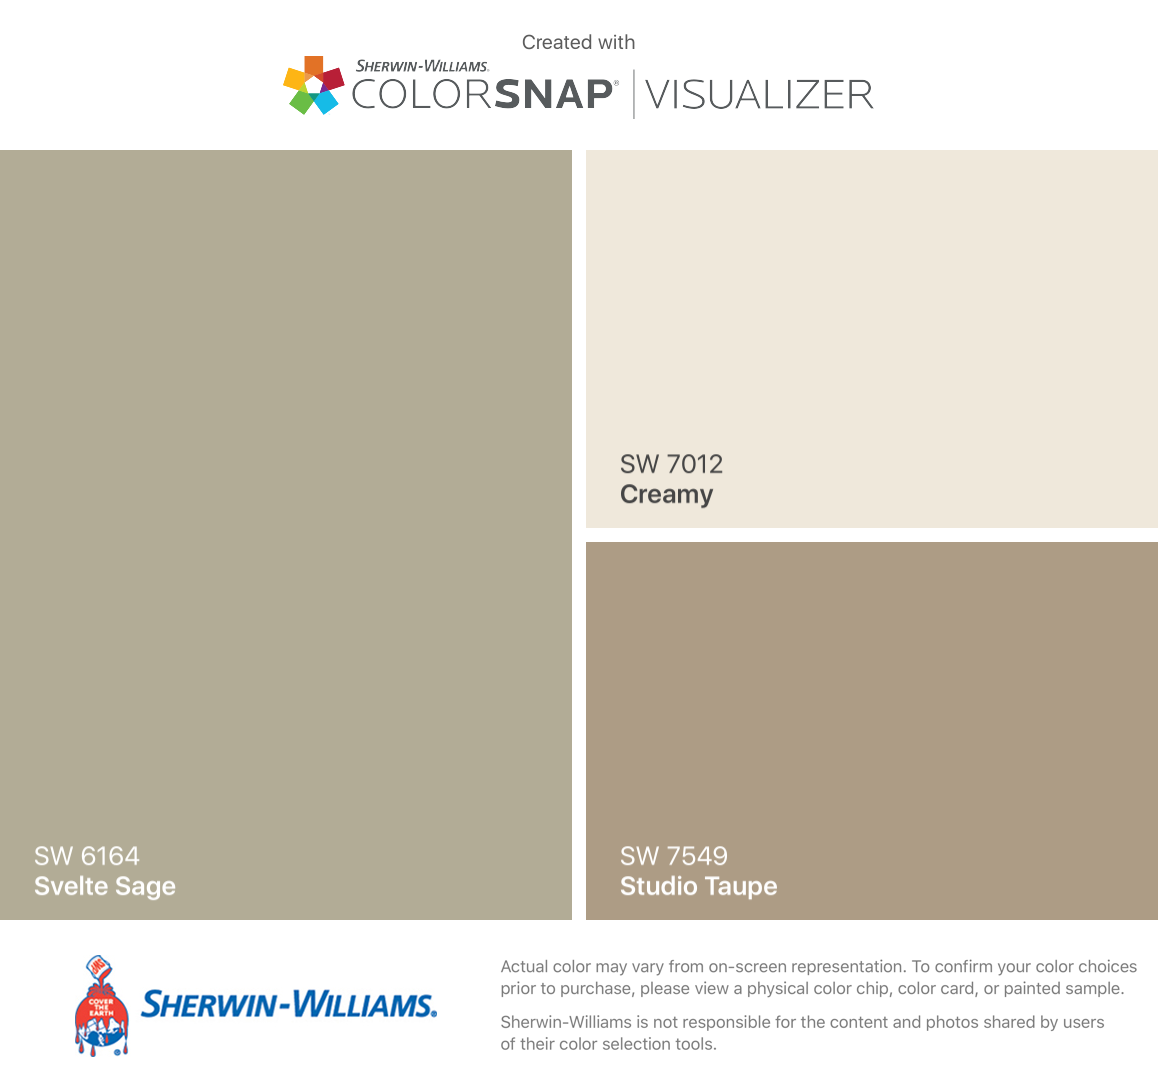 I Found These Colors With ColorSnapR Visualizer For IPhone By Sherwin Williams Svelte Sage SW 6164 Creamy 7012 Studio Taupe 7549